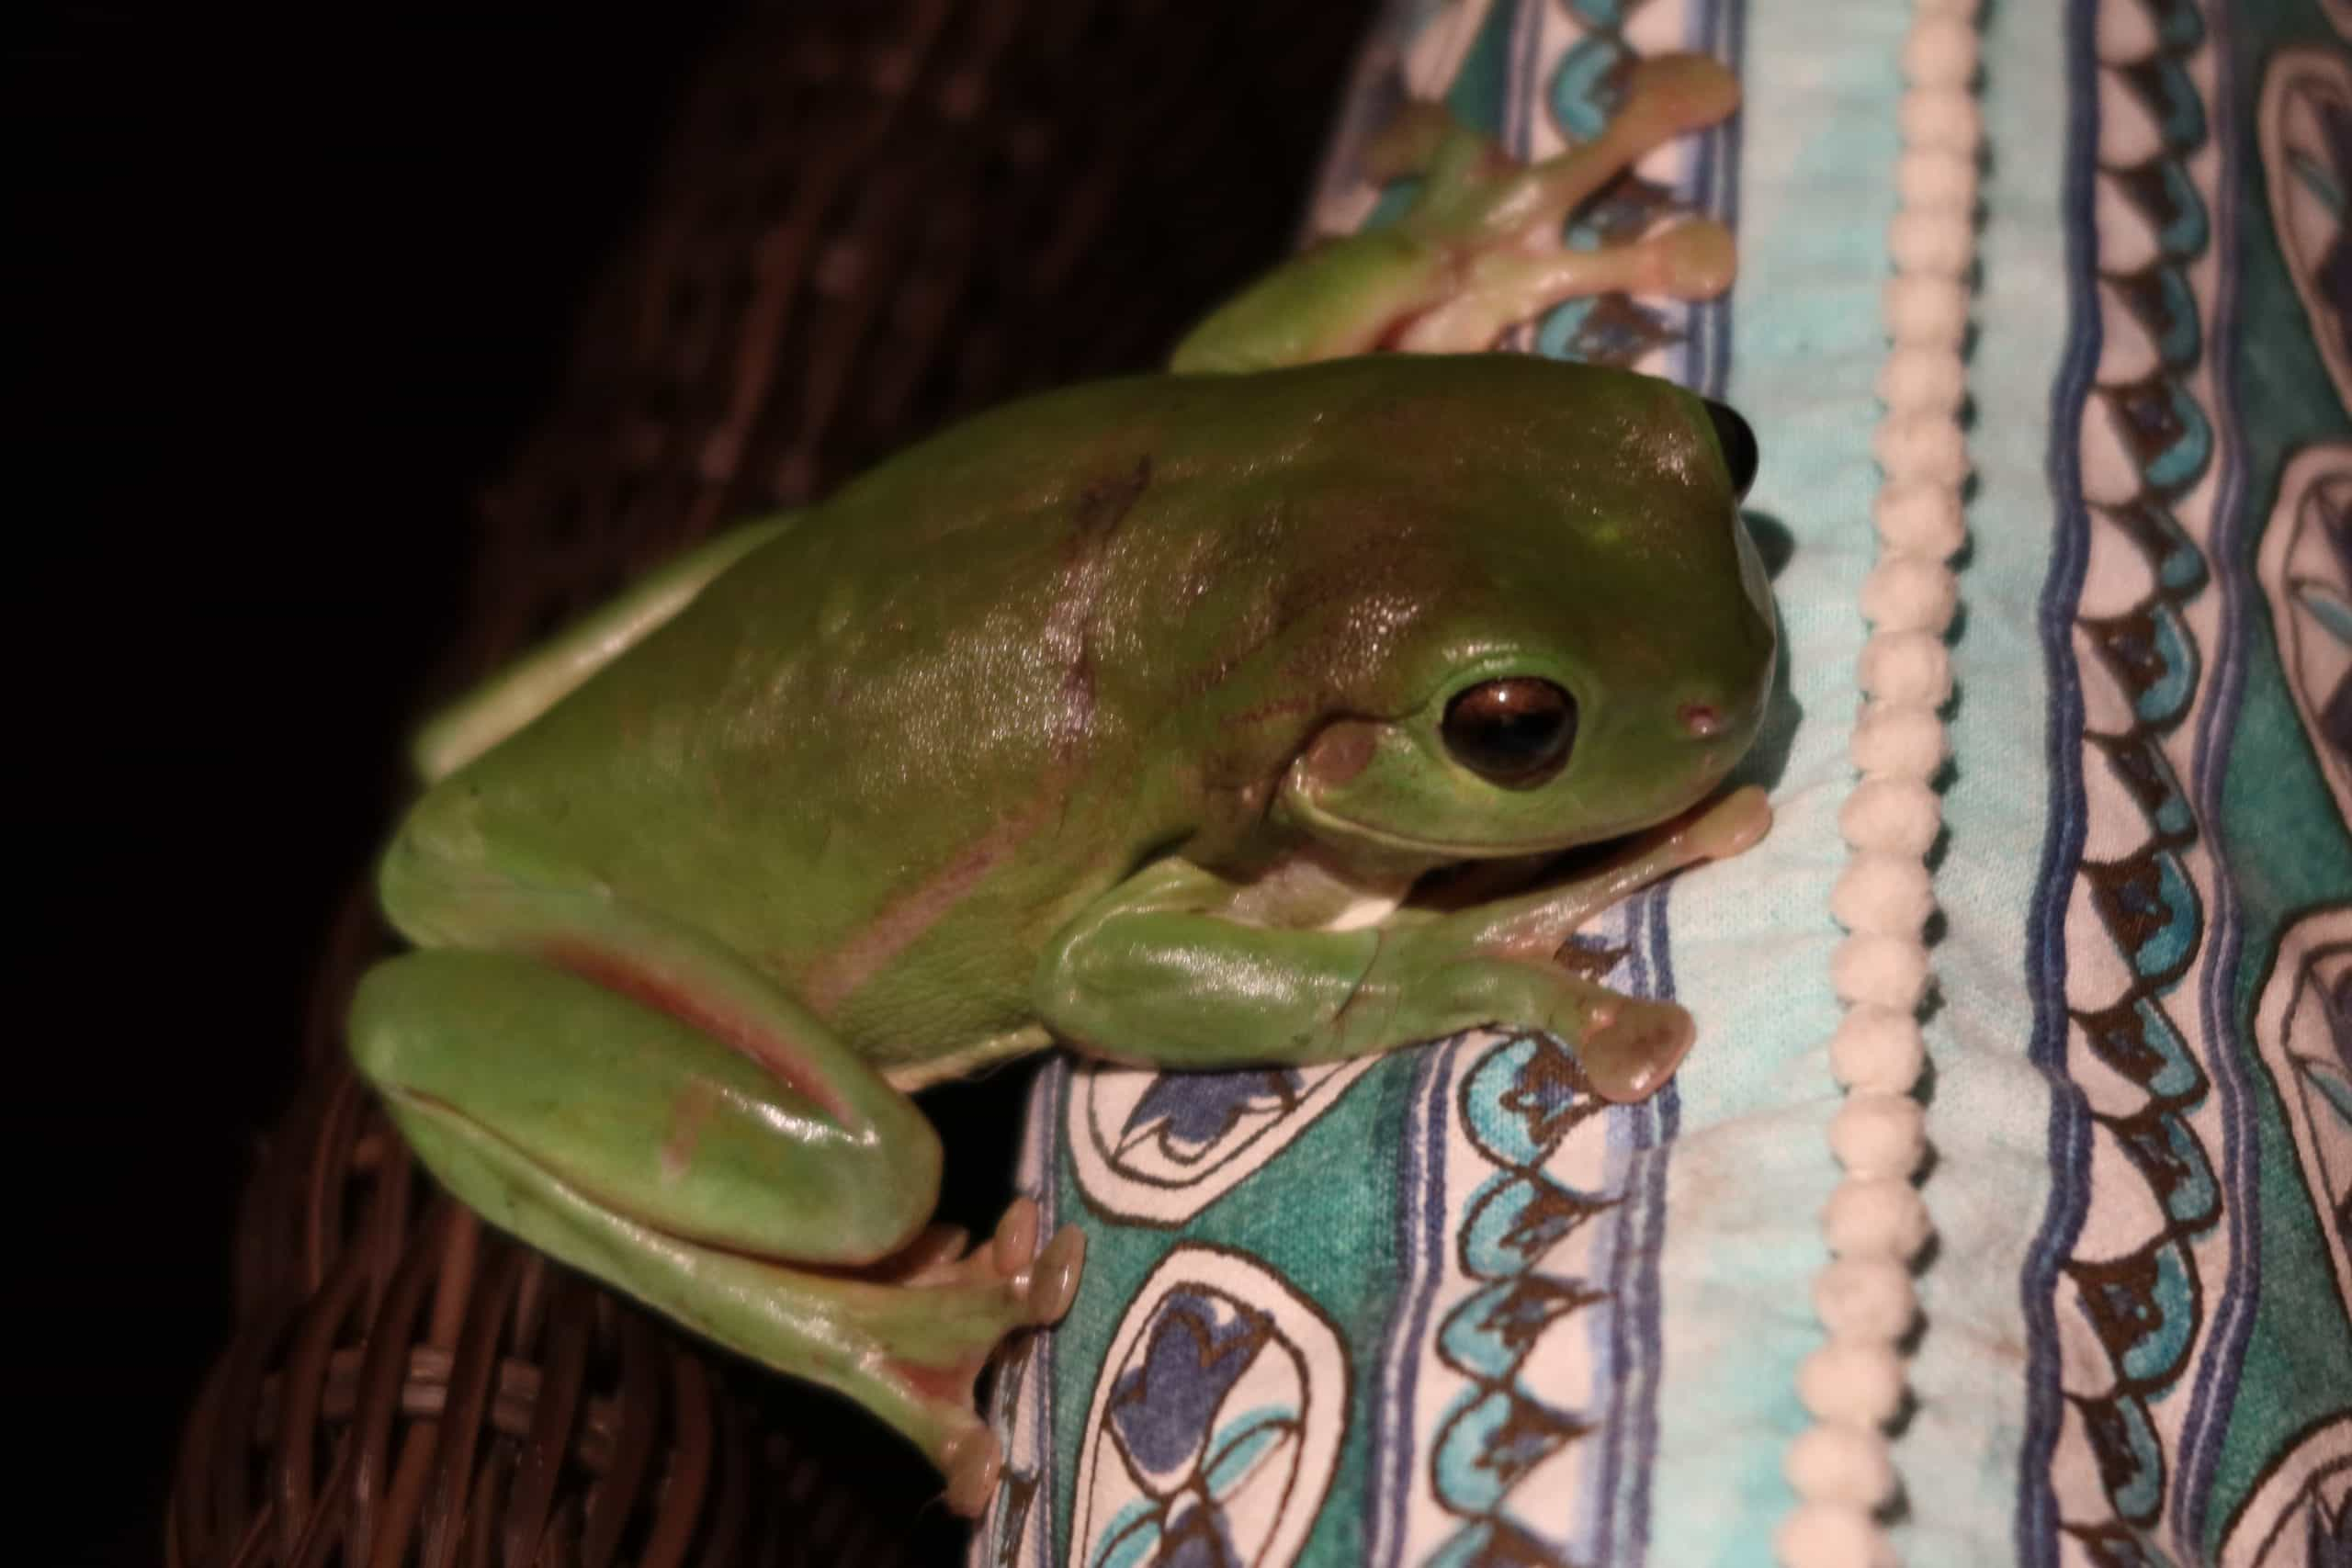 Australian green tree frog on a chair